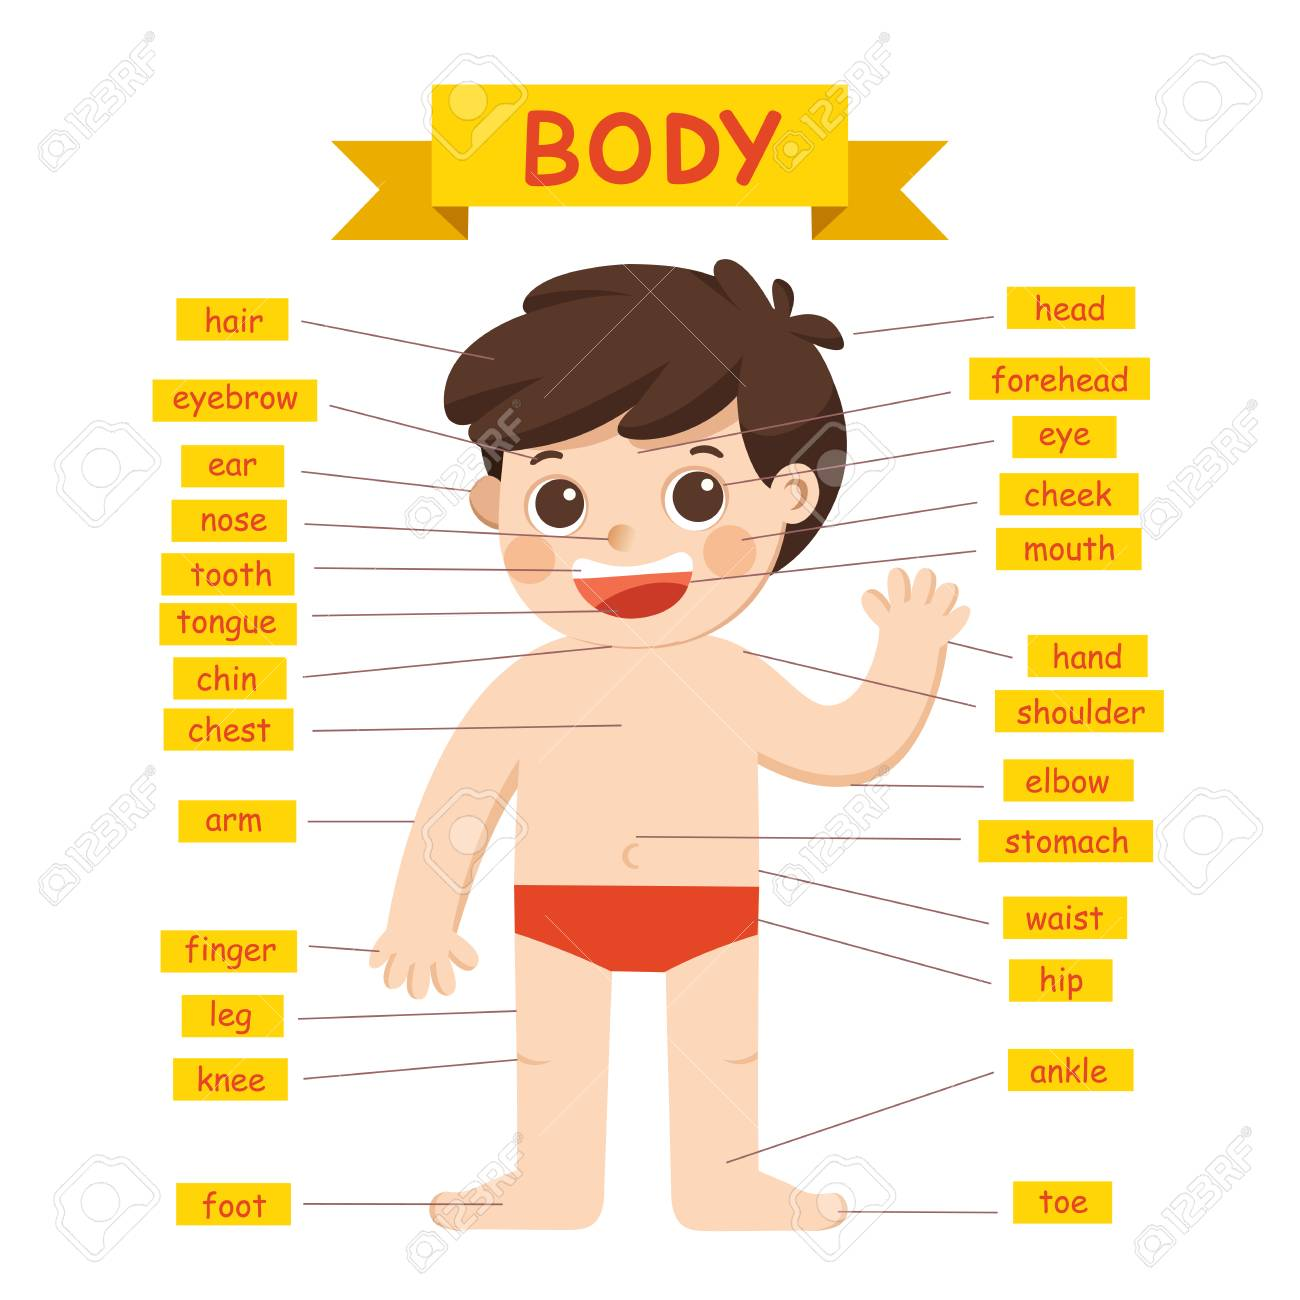 hight resolution of illustration of boy body parts diagram royalty free cliparts labeled diagram of parts of the body diagram of parts of body